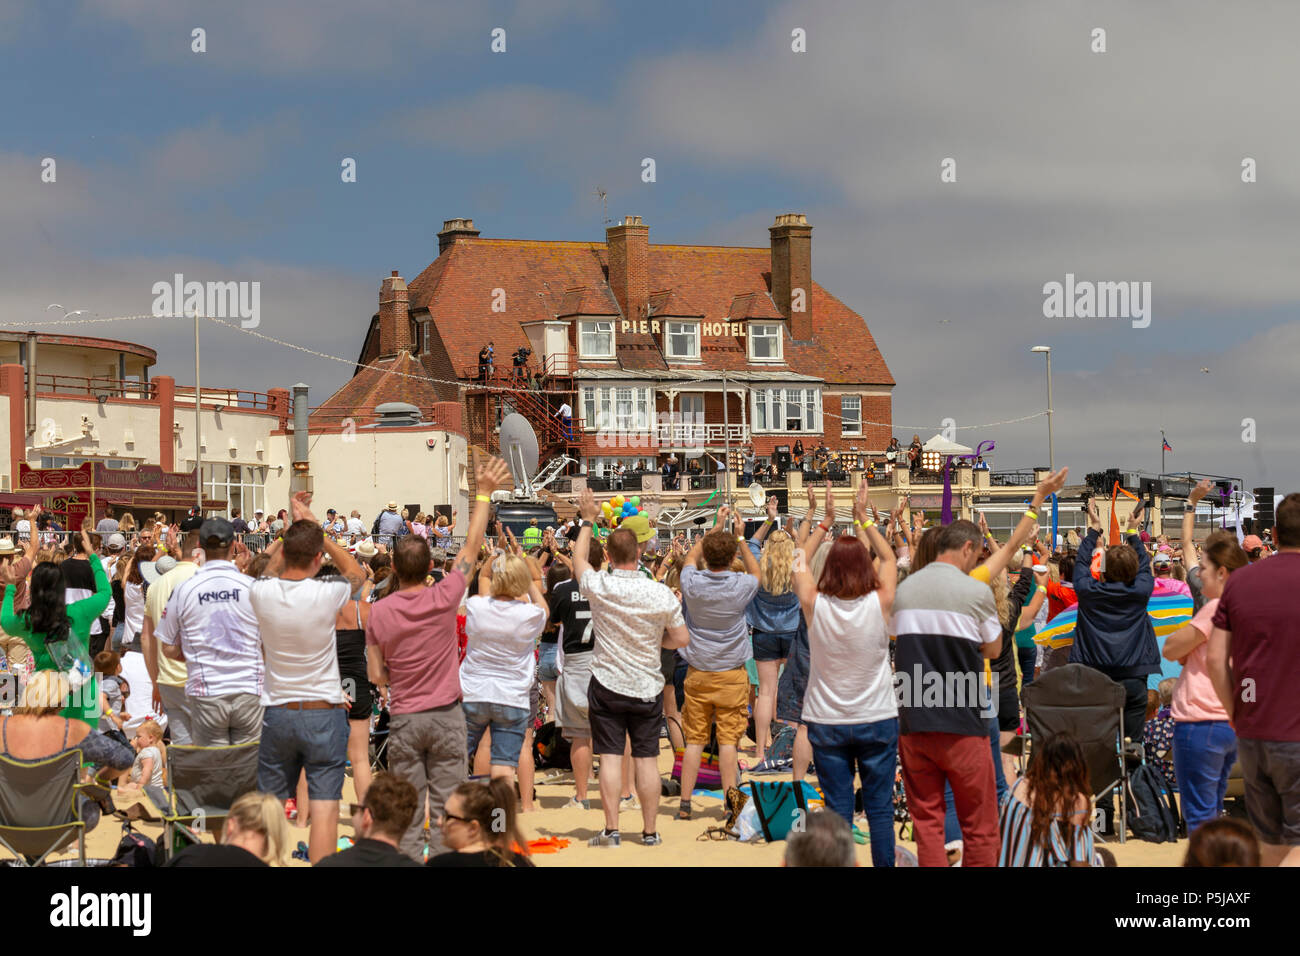 Gorleston, Norfolk, UK. June 27, 2018: Crowds of locals wave during filming of Danny Boyle's latest work, that imagines what might have happened if there hadn't been The Beatles. About 6,000 locals turned out as 'extras', organisers said. Credit: Paul Cowan/Alamy Live News - Stock Image